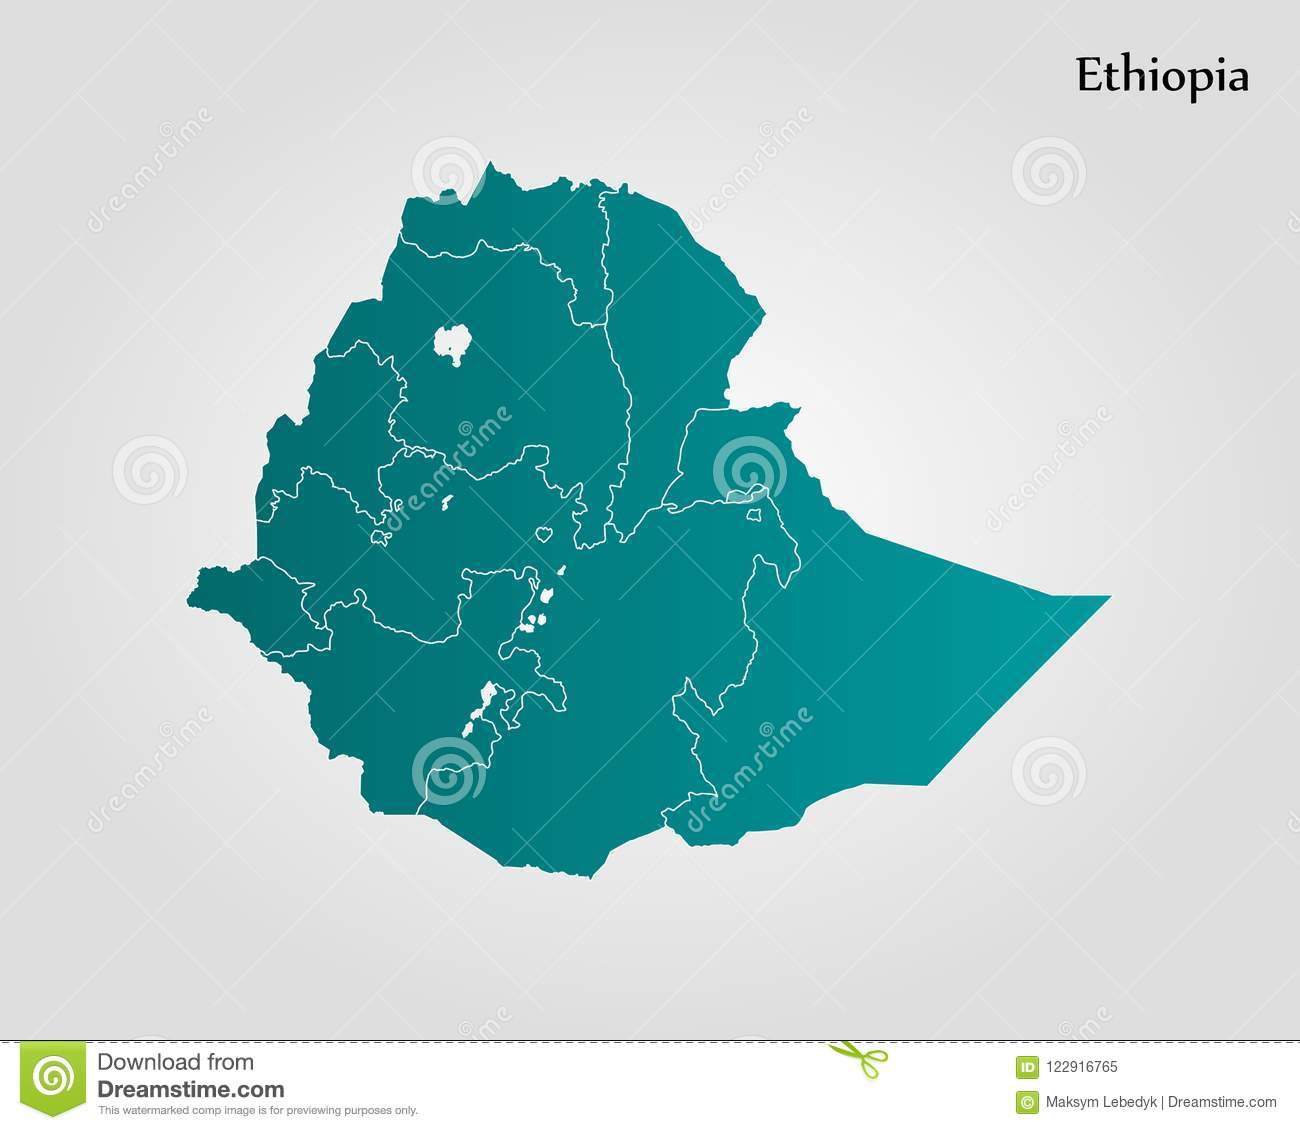 Map of Ethiopia stock illustration. Illustration of africa - 122916765